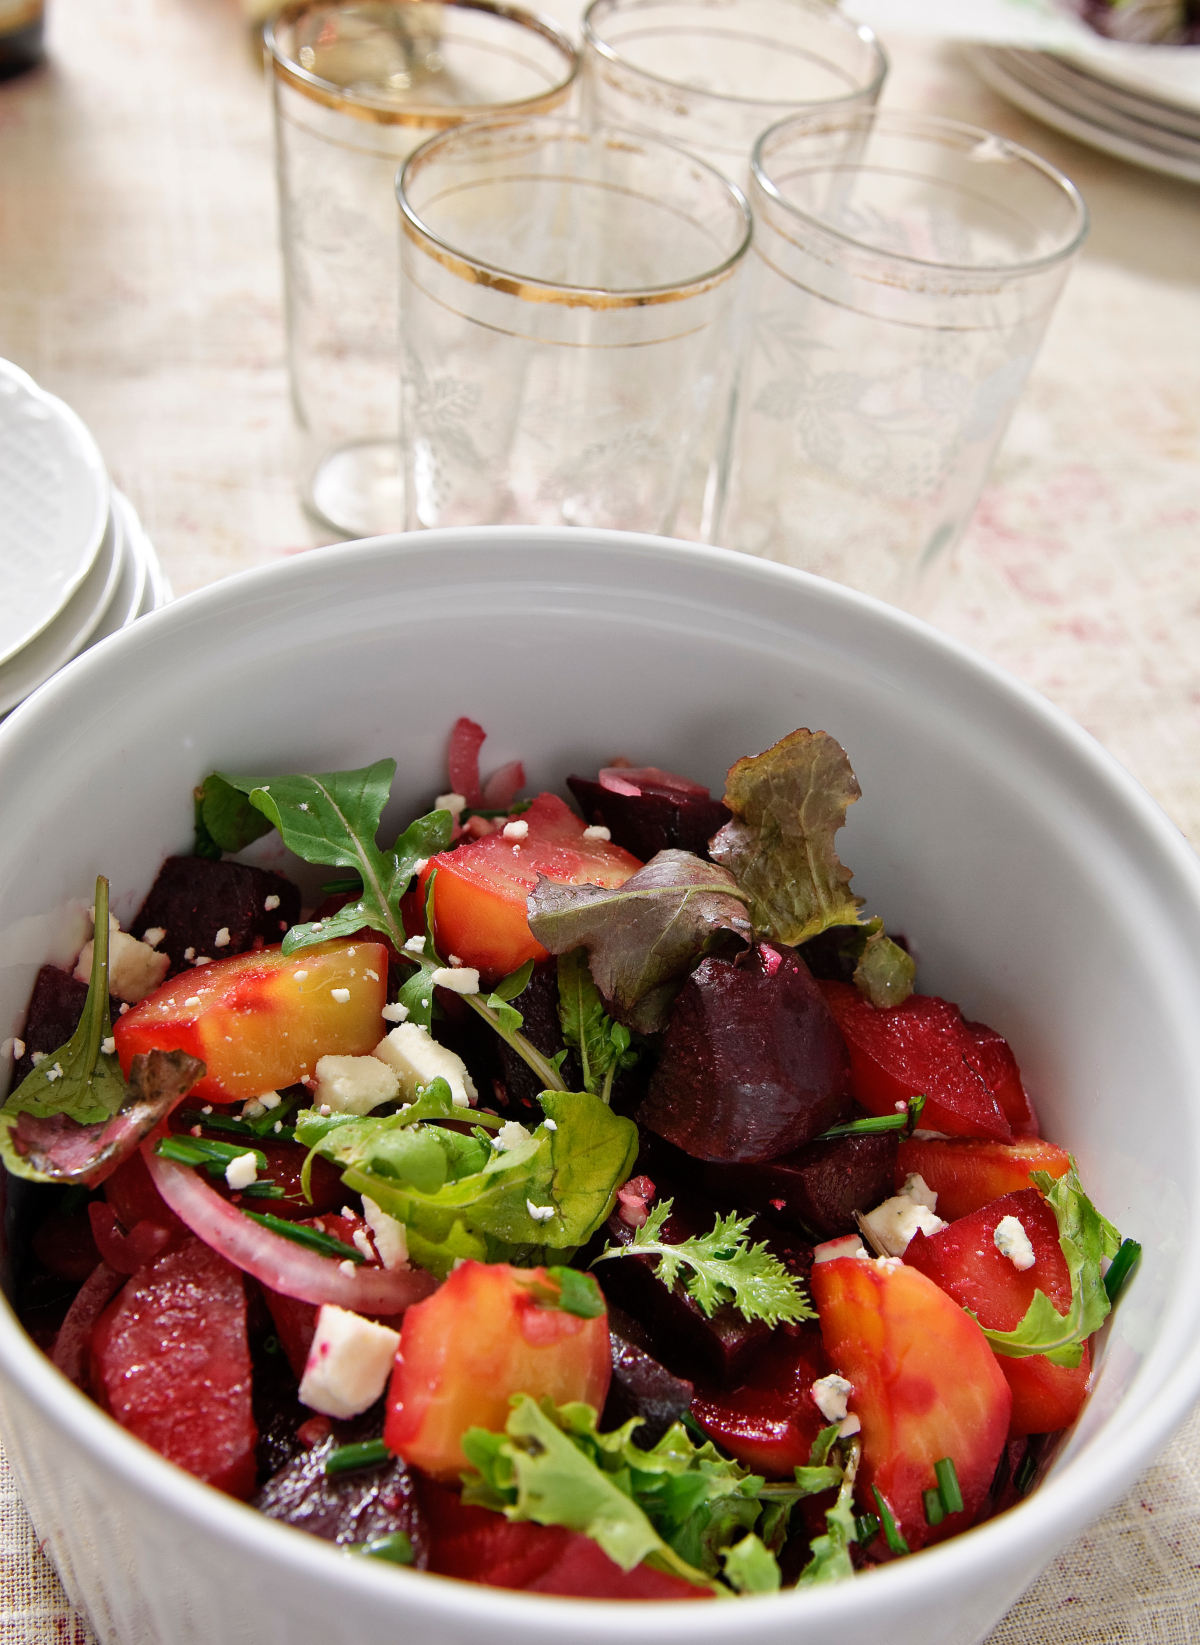 Shave prep time off this easy French salad recipe by purchasing pre-cooked beets in the produce aisle of the supermarket. Photo by Richard Swearinger.